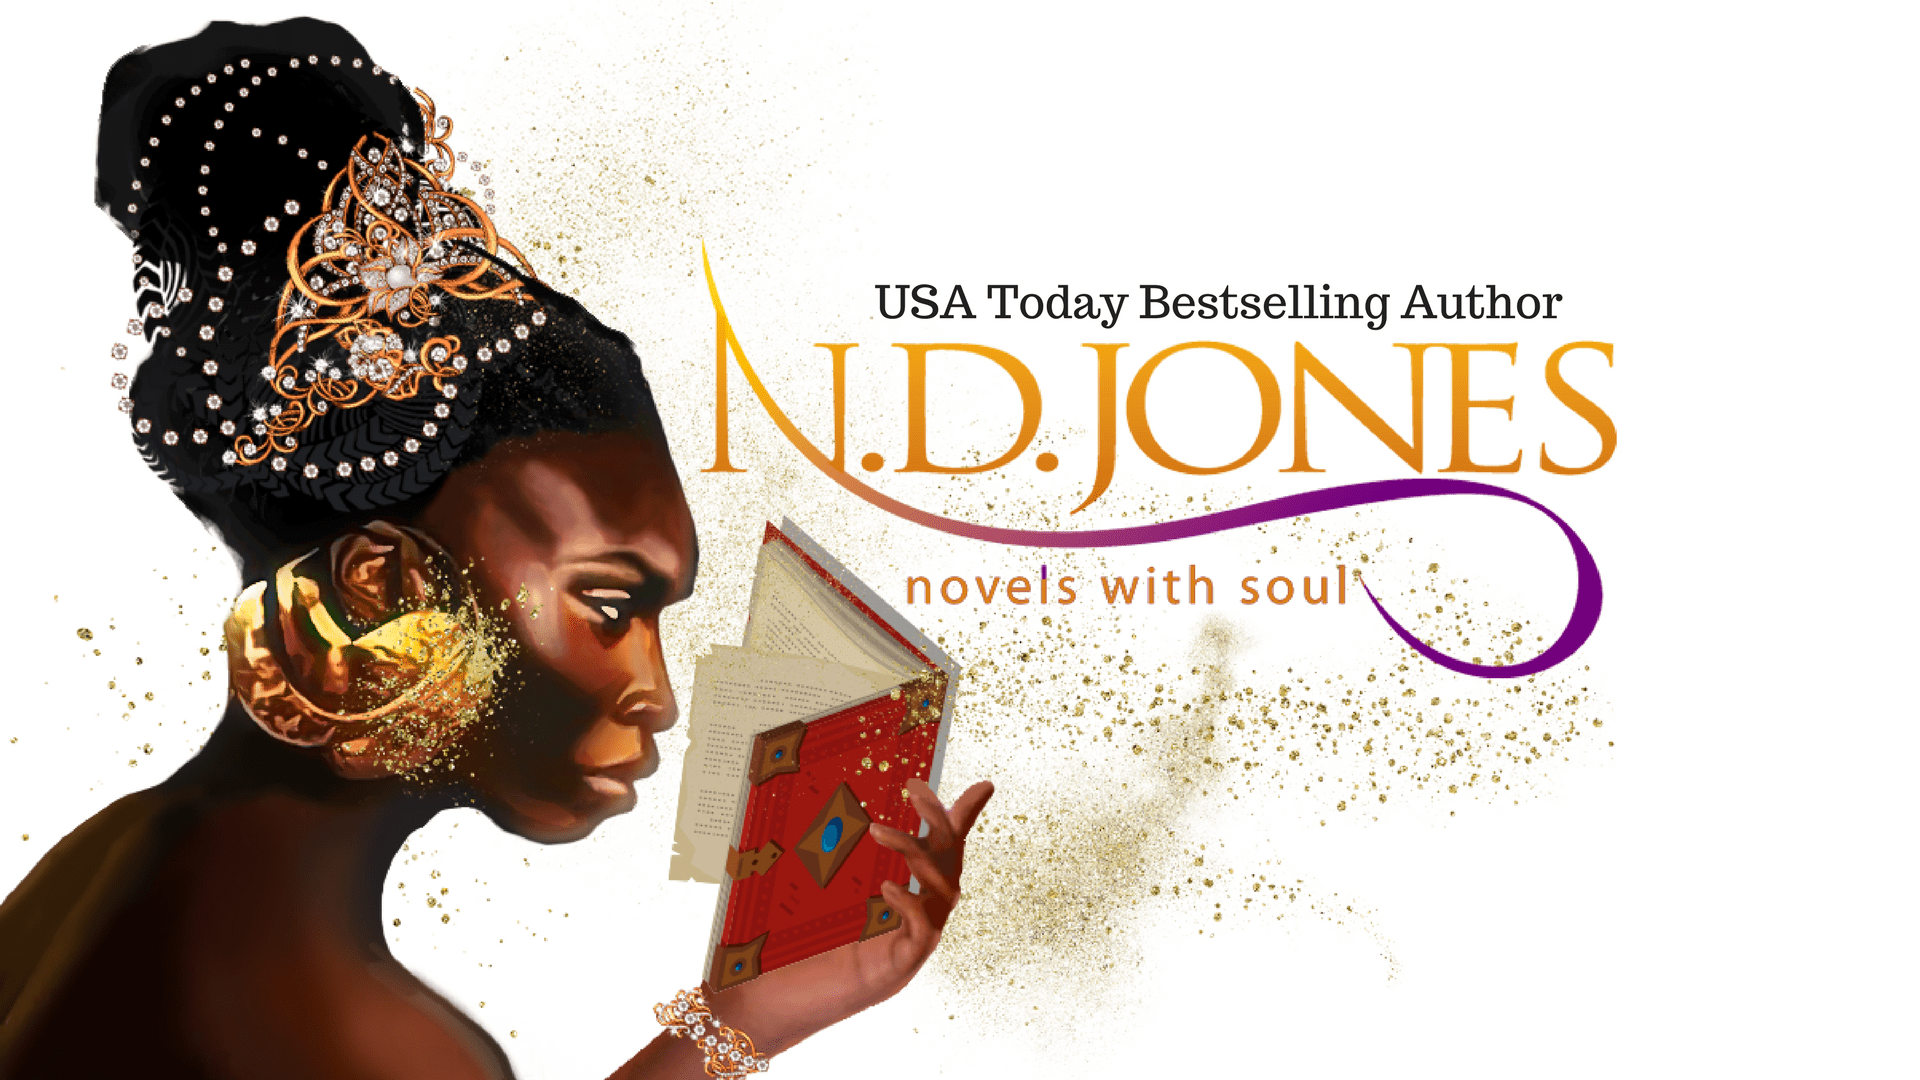 N.D. Jones, Paranormal Romance Author